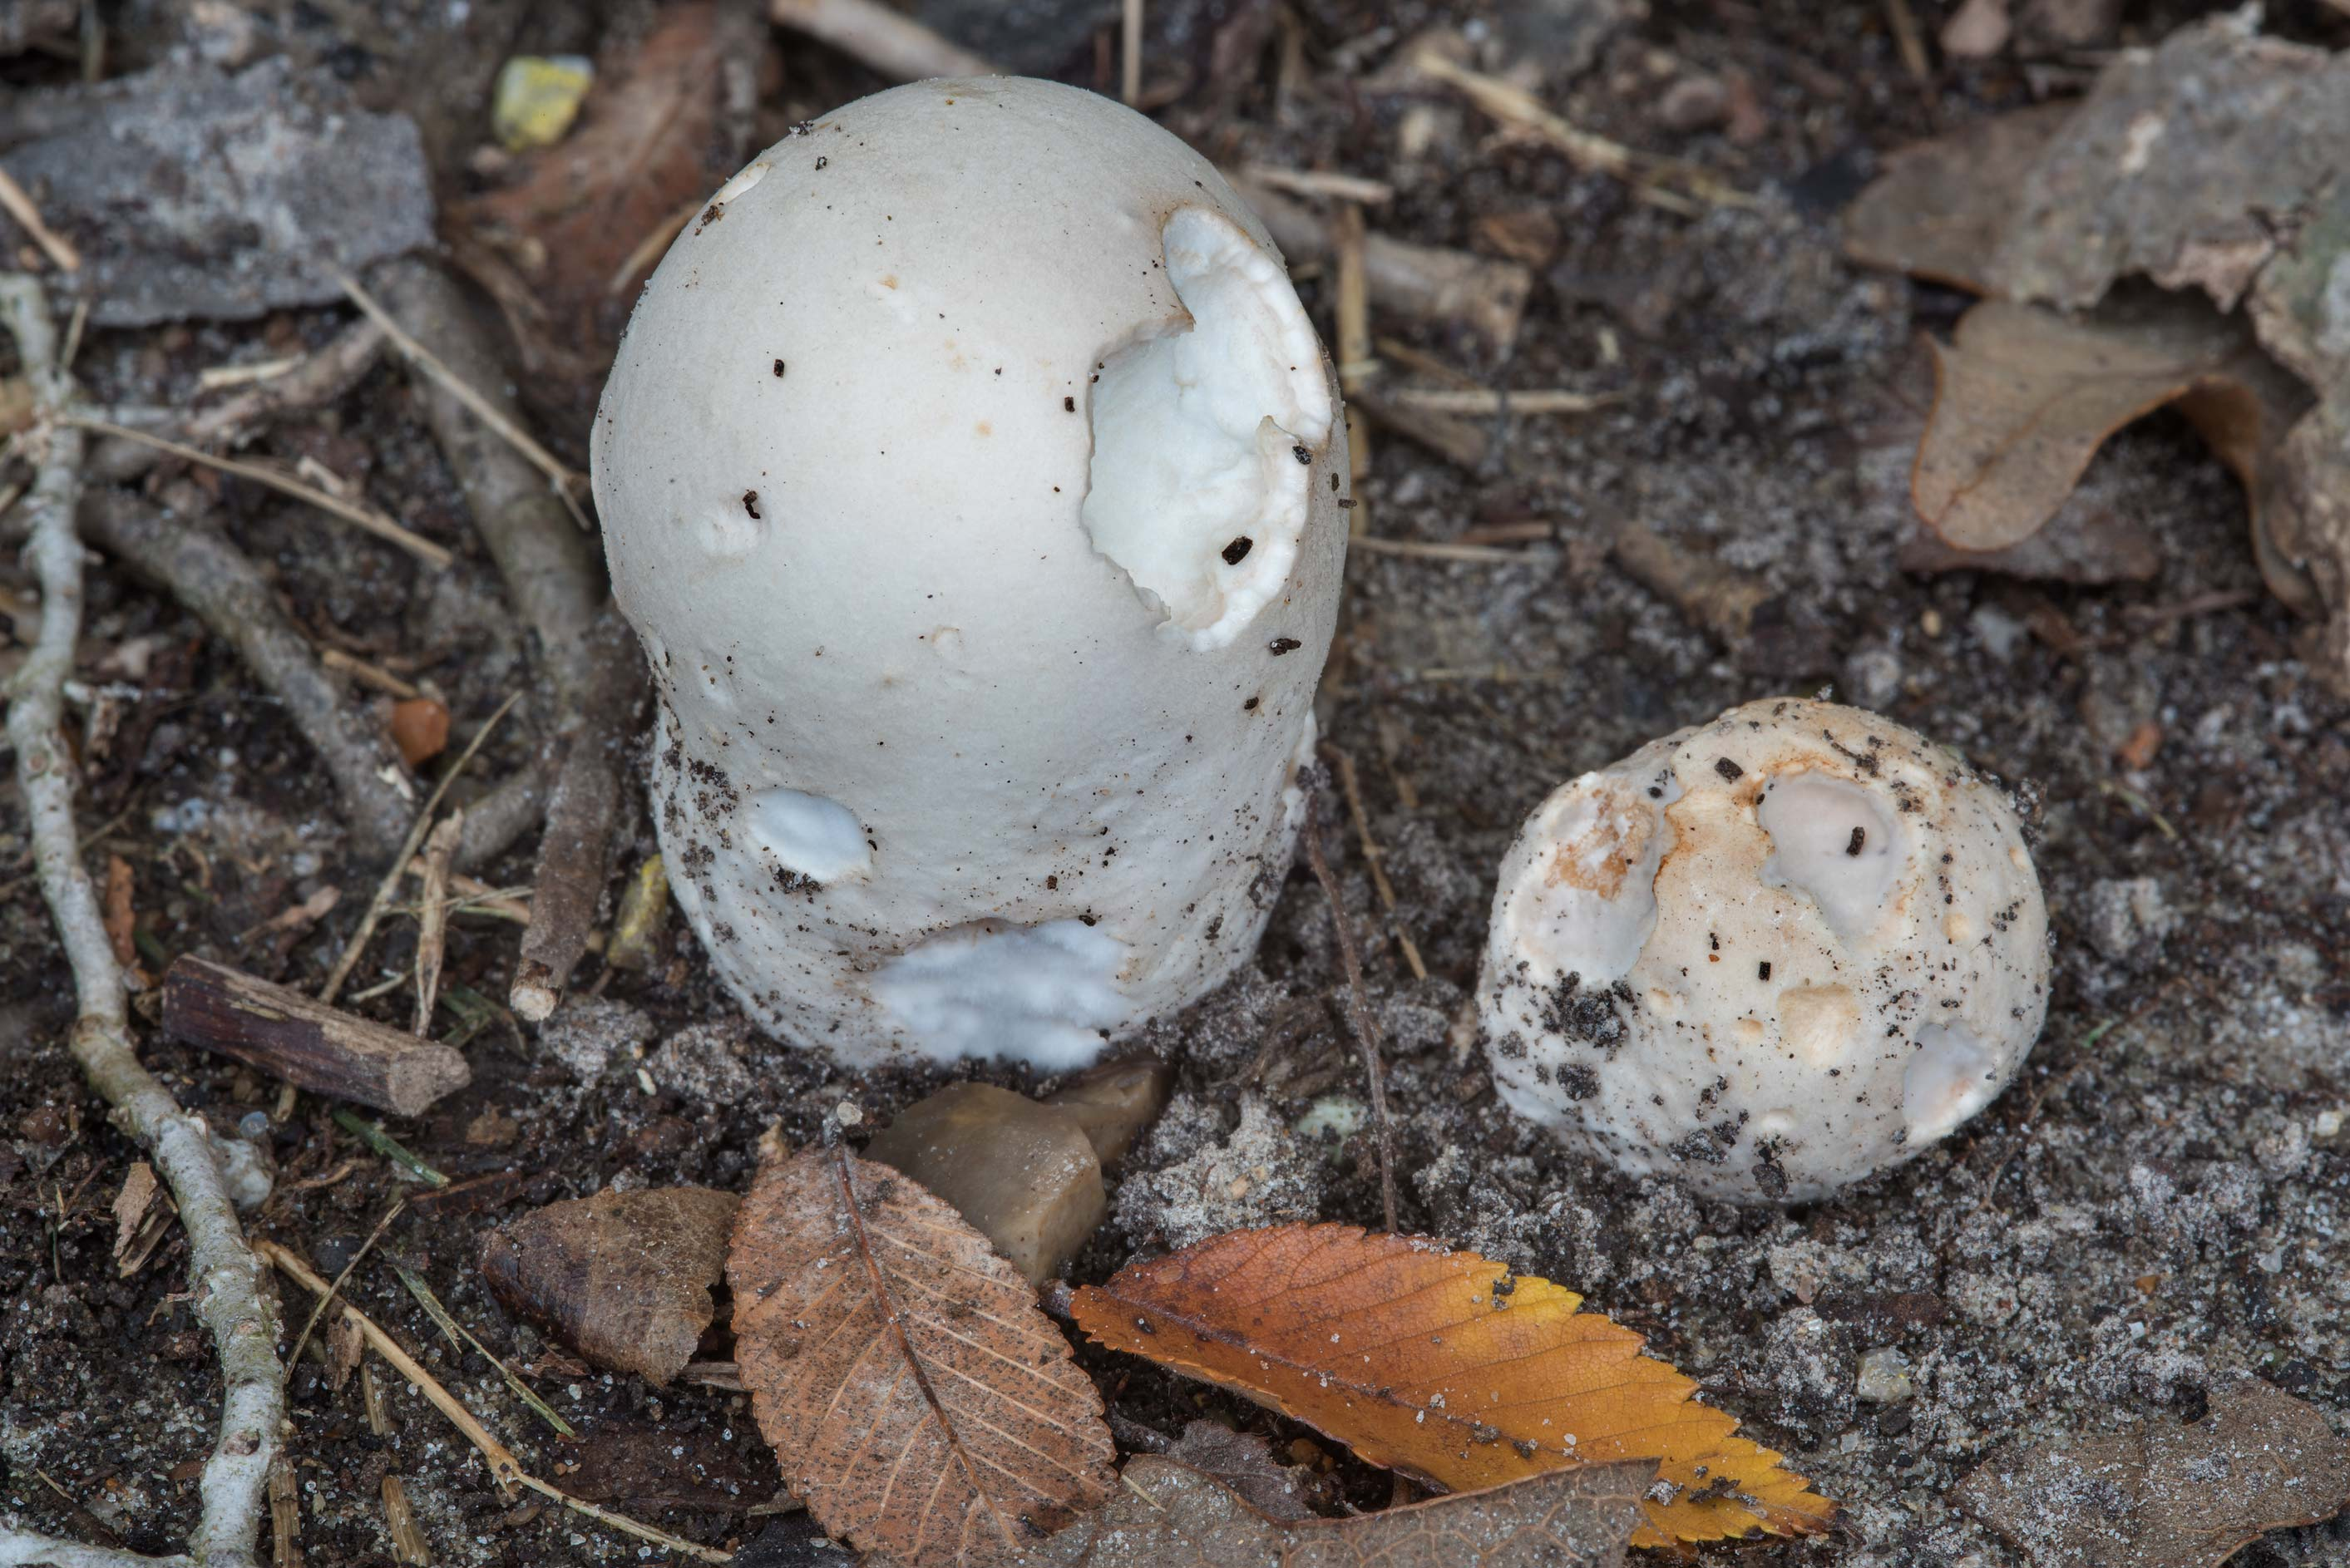 Puffball mushrooms Calvatia in Wolf Pen Creek Park. College Station, Texas